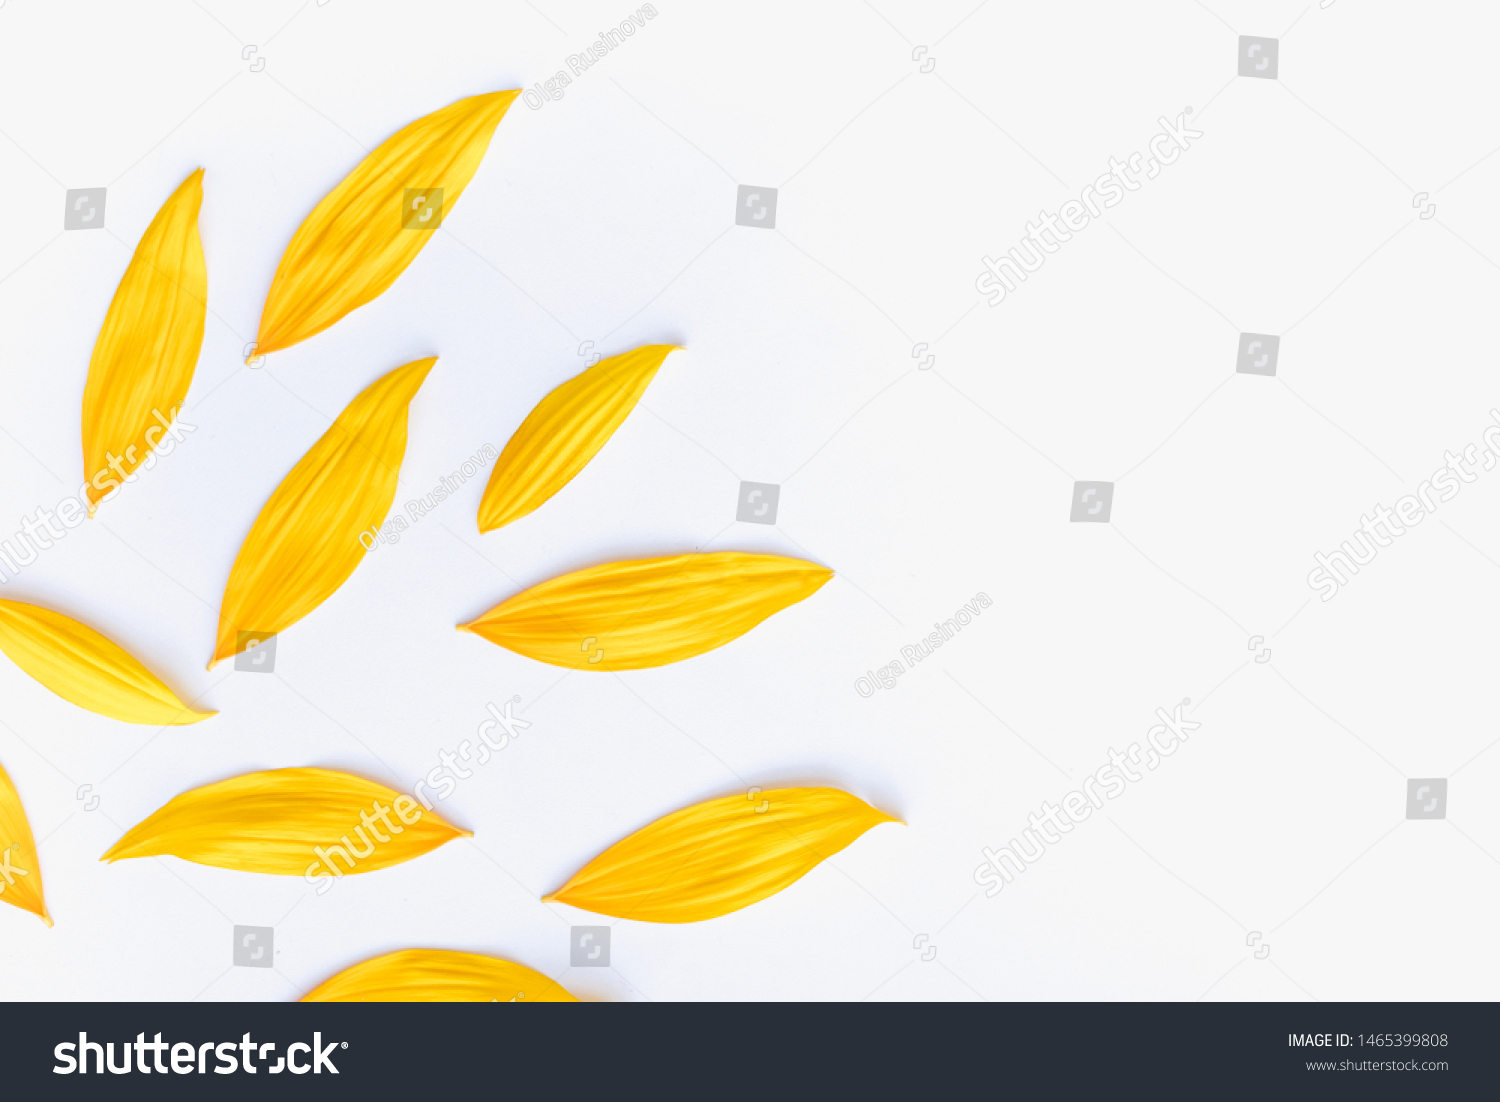 sunflower petals background, yellow petals on a white background, sunflower petals, sunflower petals on a white background #1465399808